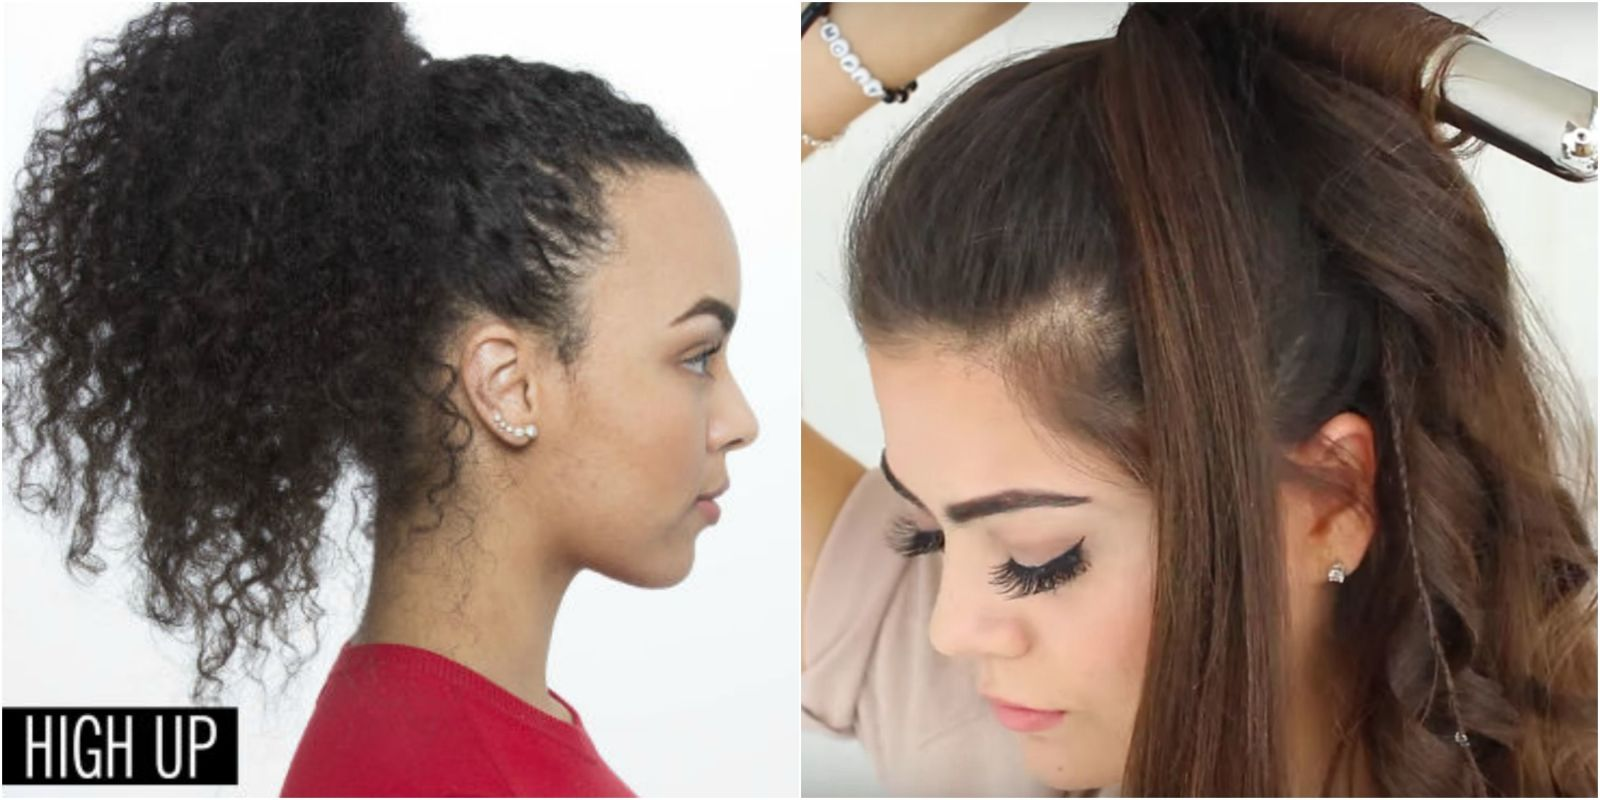 11 easy ponytail hairstyles - best ideas for ponytail styles